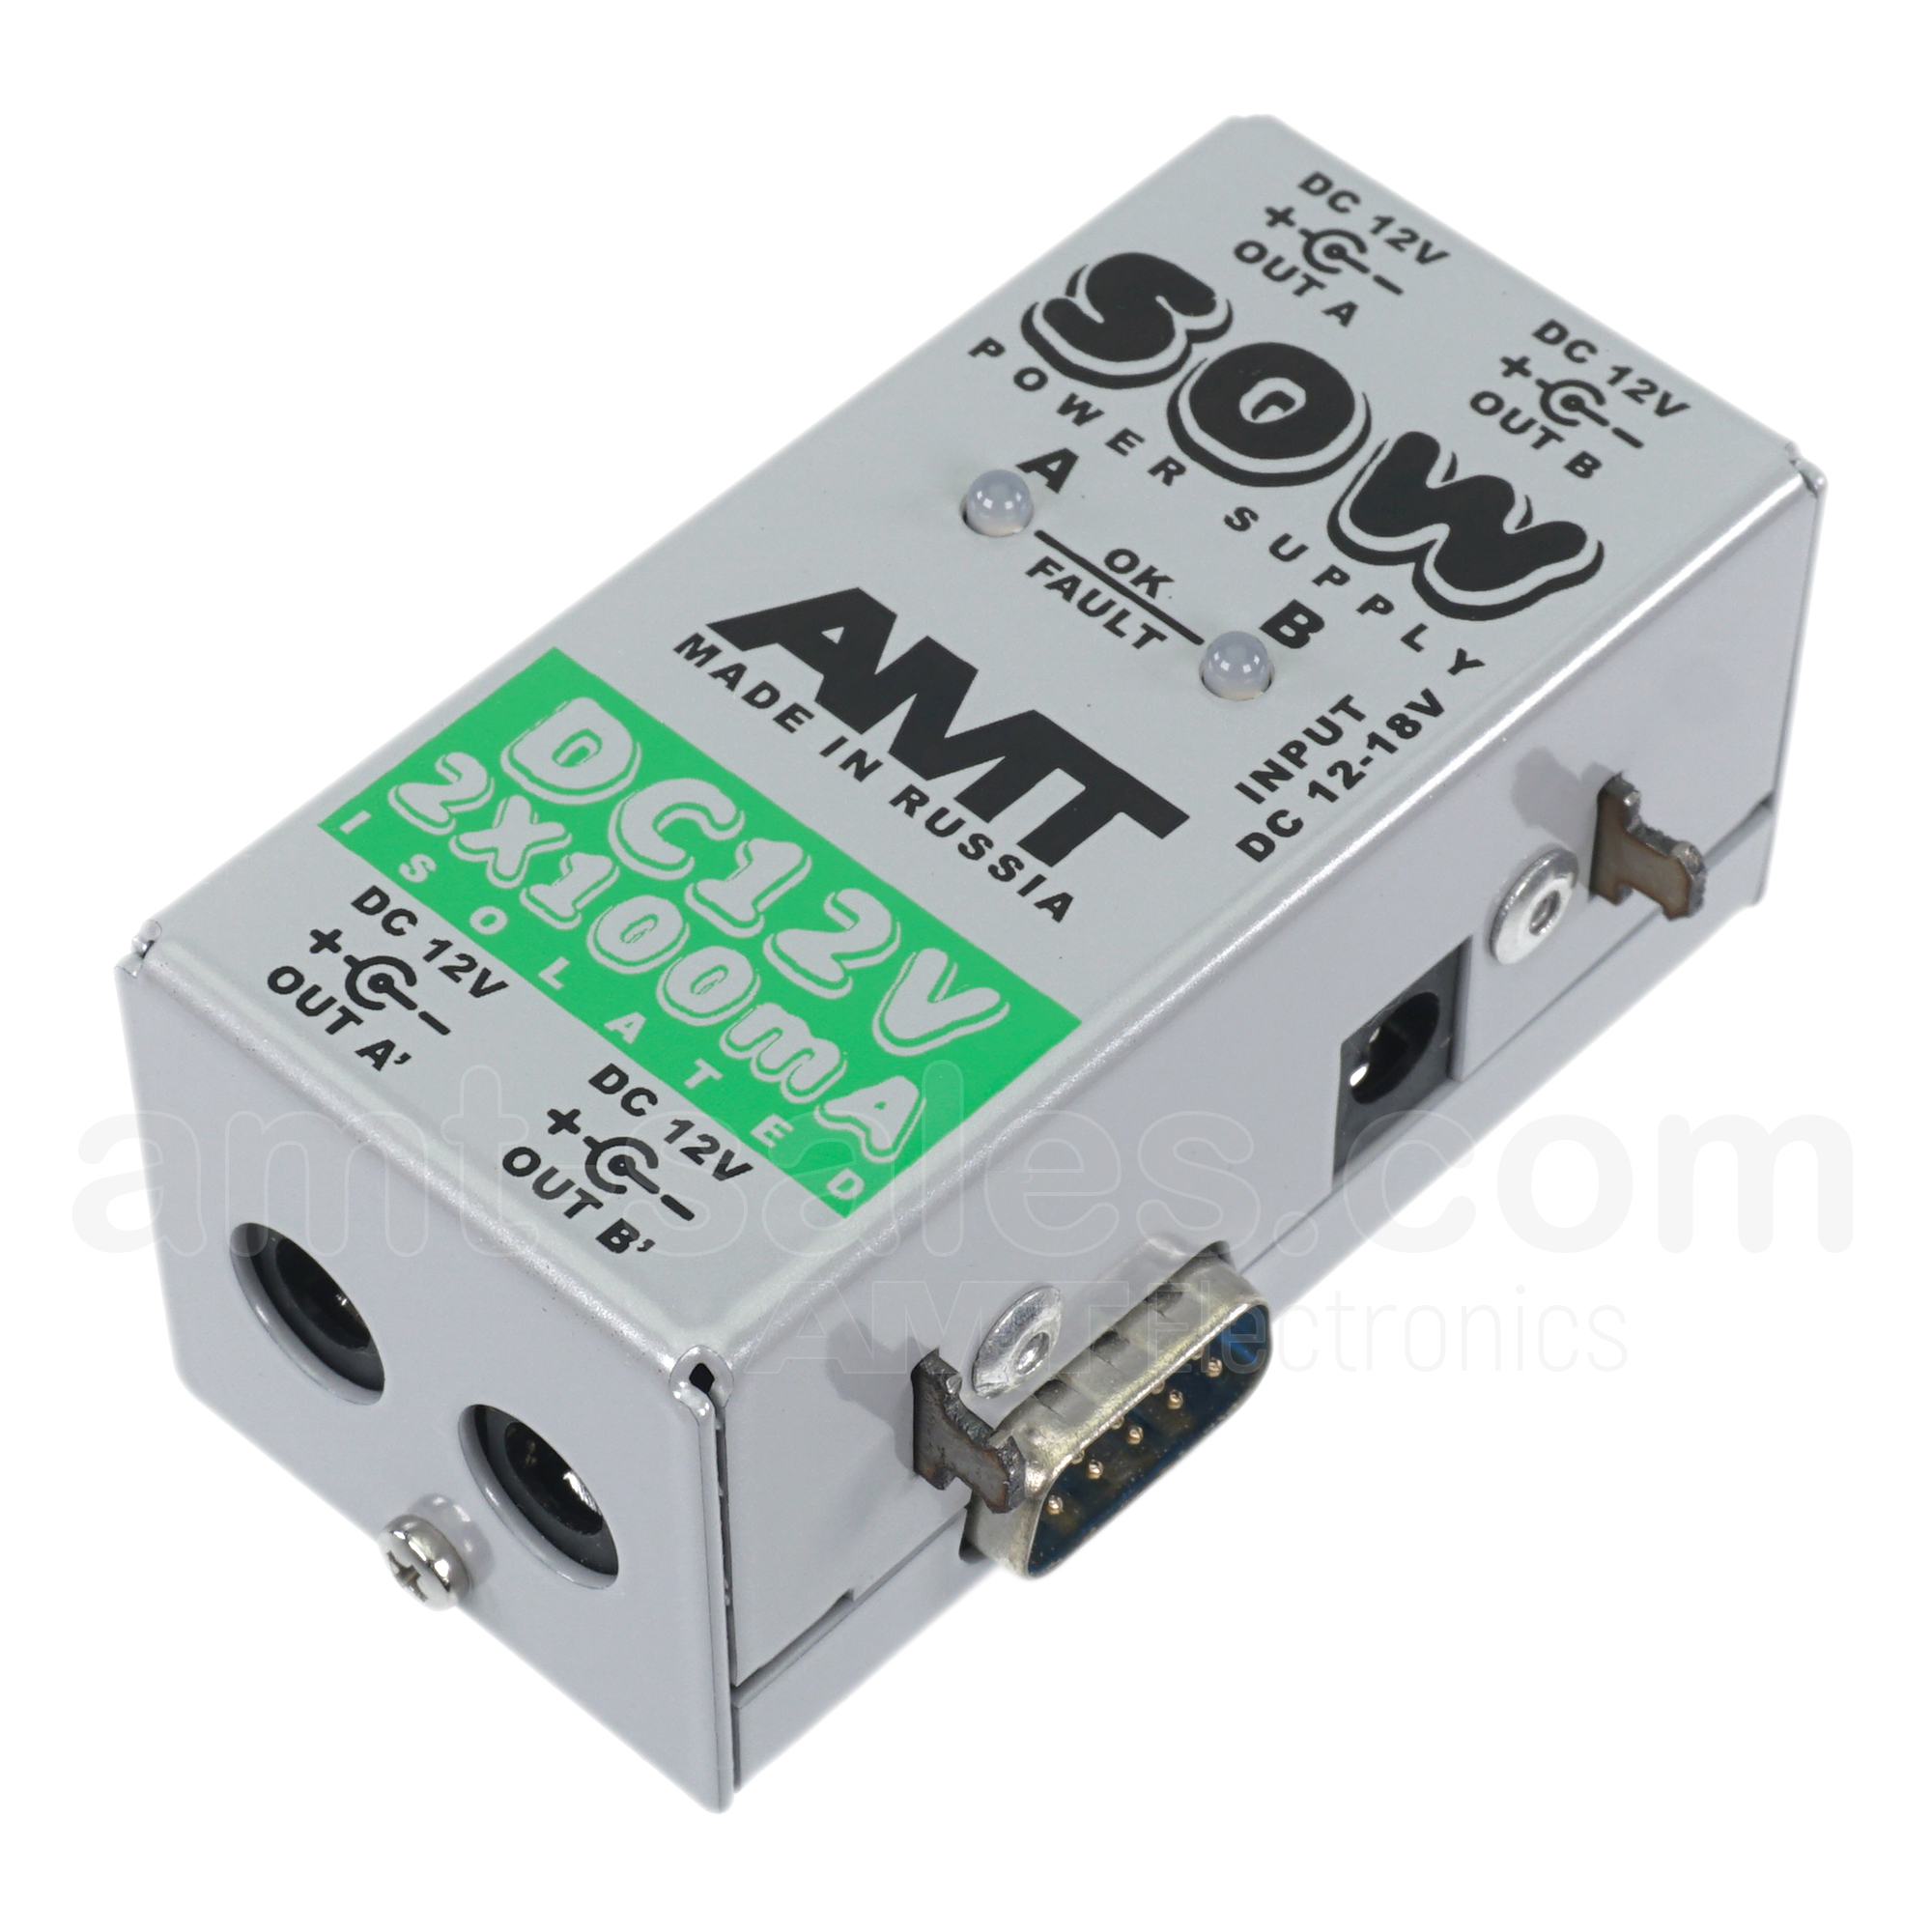 AMT SOW PS-2 DC-12V 2x100mA - power supply module